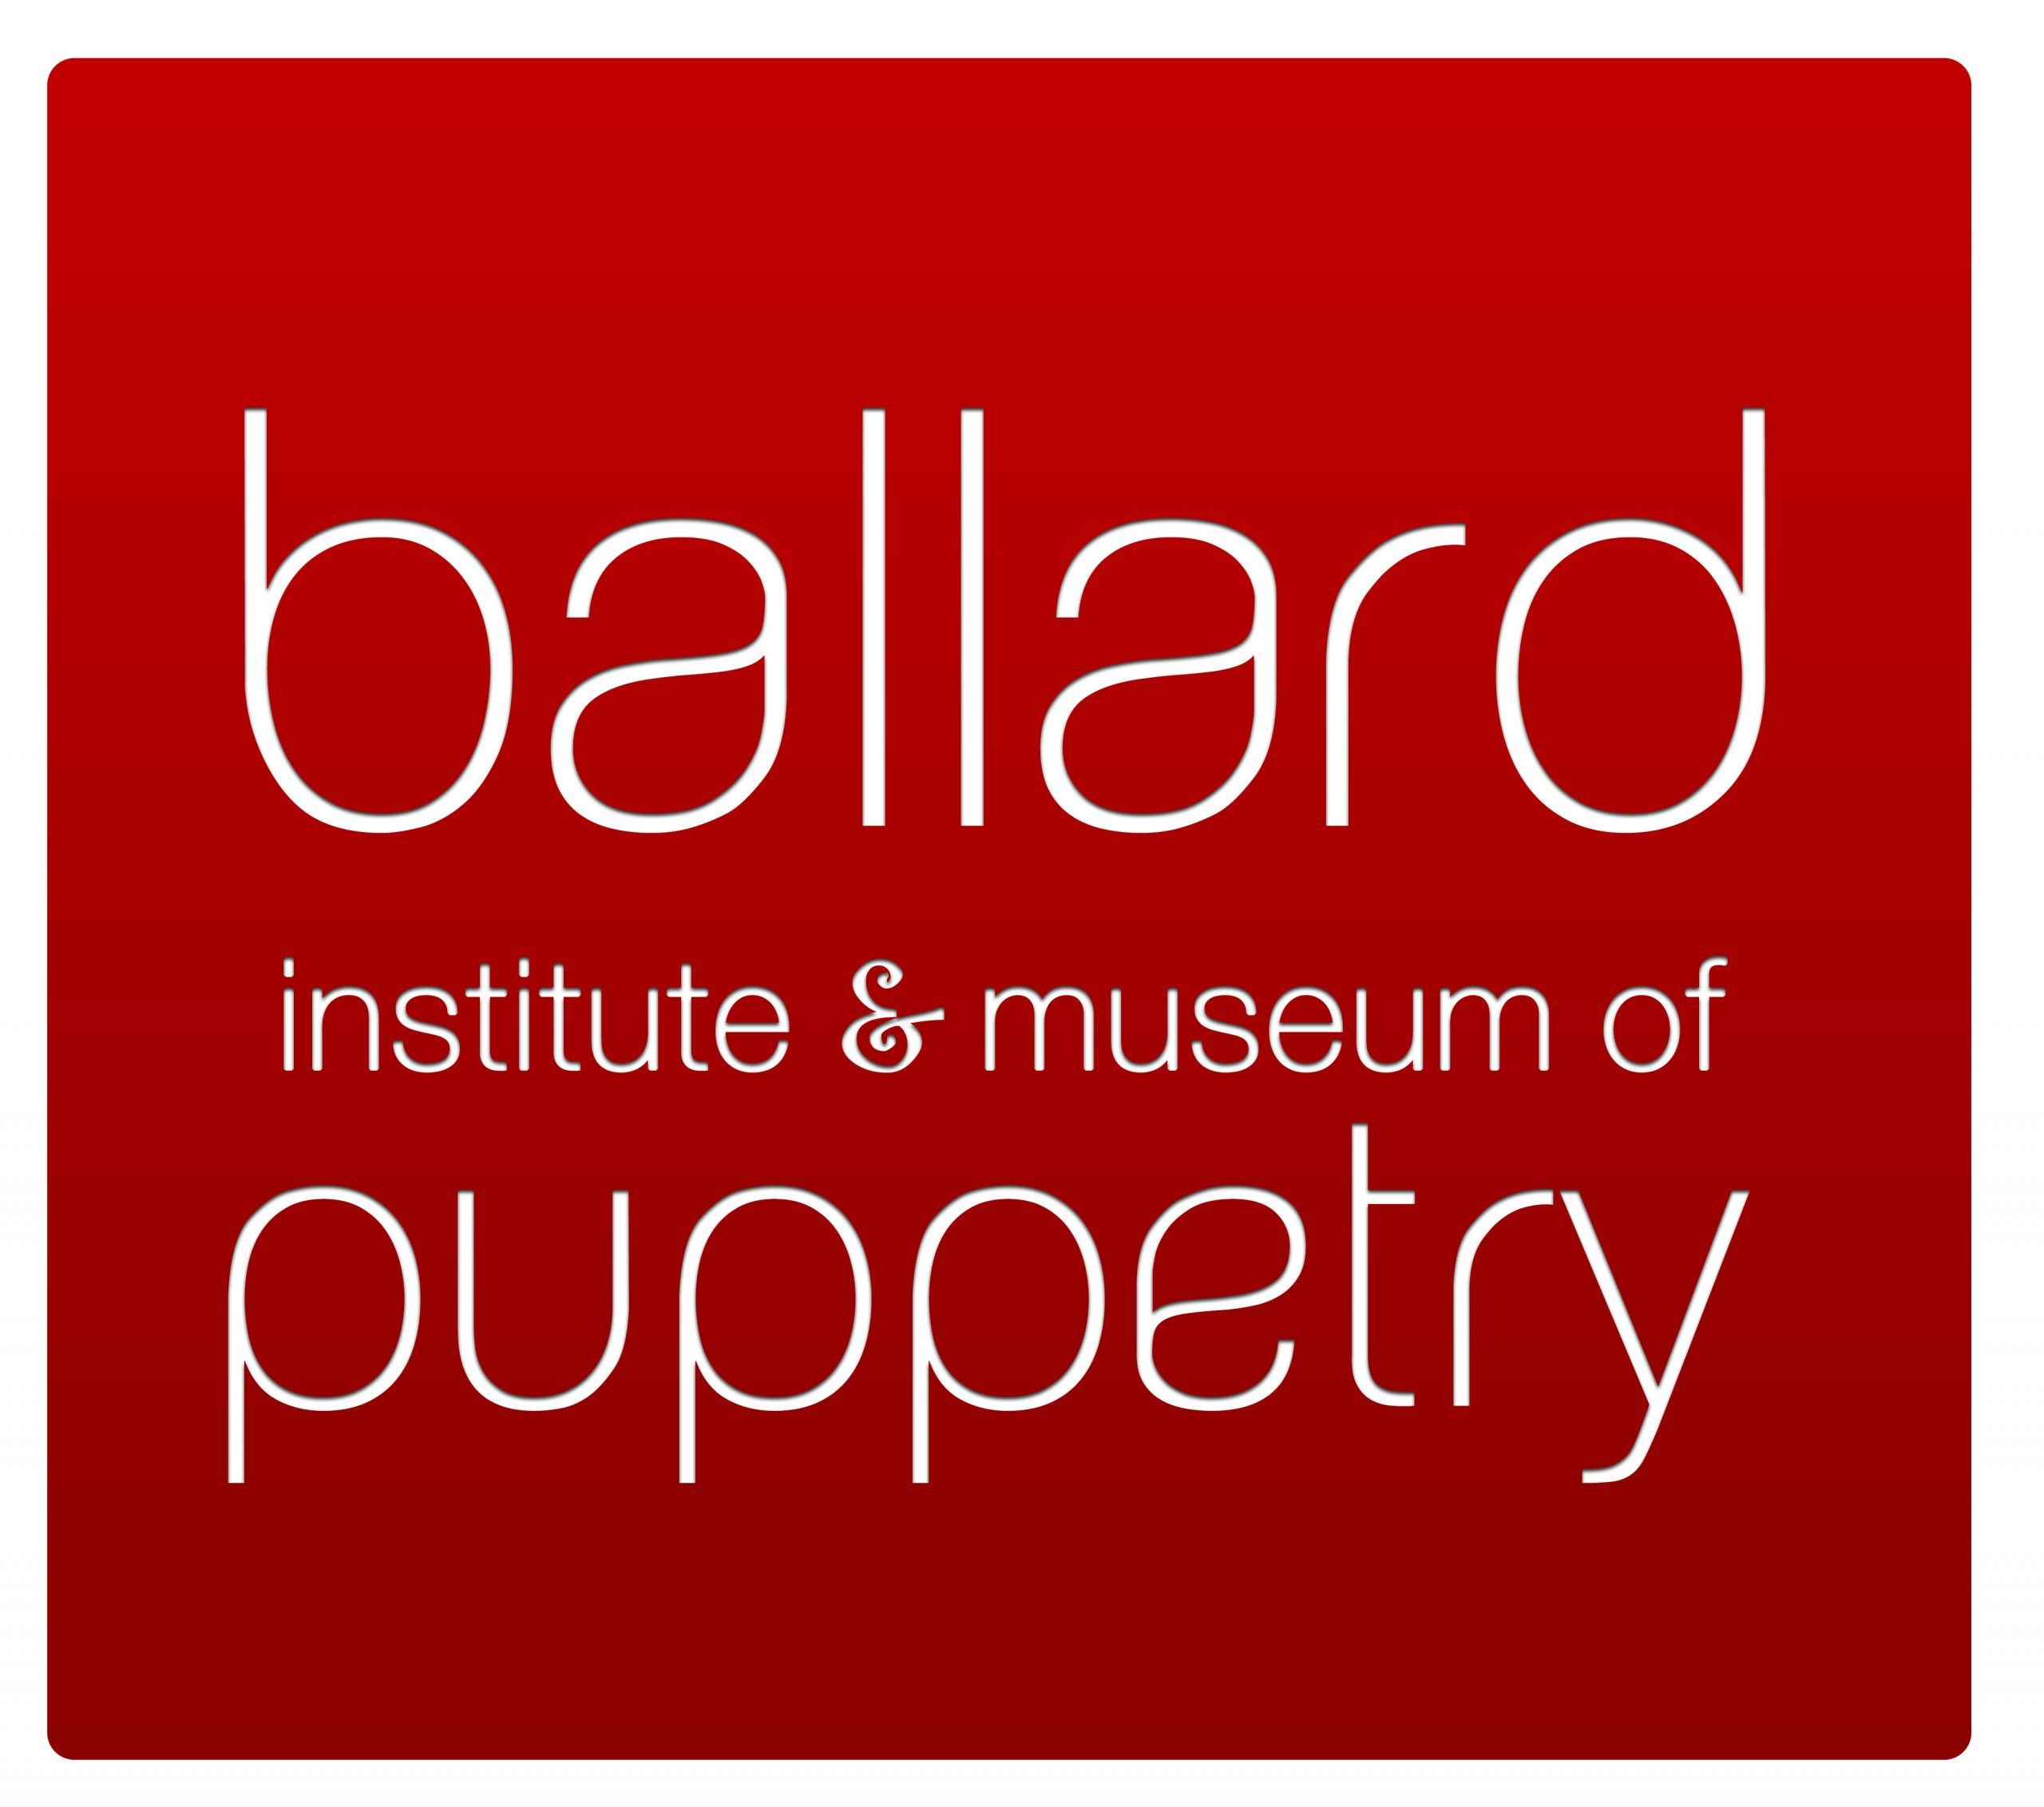 Ballard Institute & Museum of Puppetry (white letters on red background)